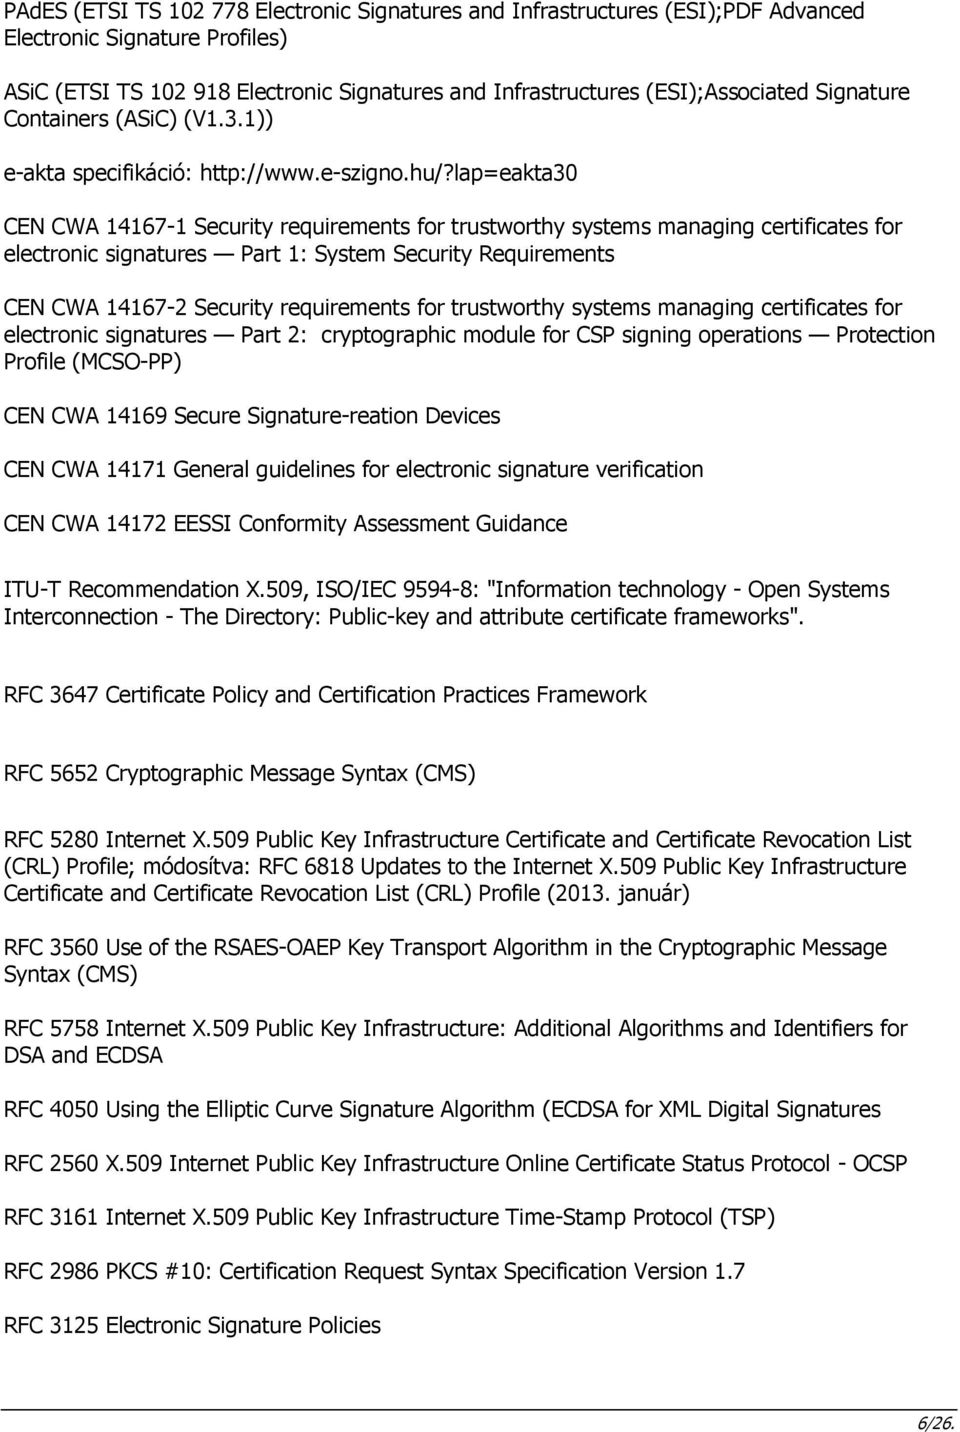 lap=eakta30 CEN CWA 14167-1 Security requirements for trustworthy systems managing certificates for electronic signatures Part 1: System Security Requirements CEN CWA 14167-2 Security requirements